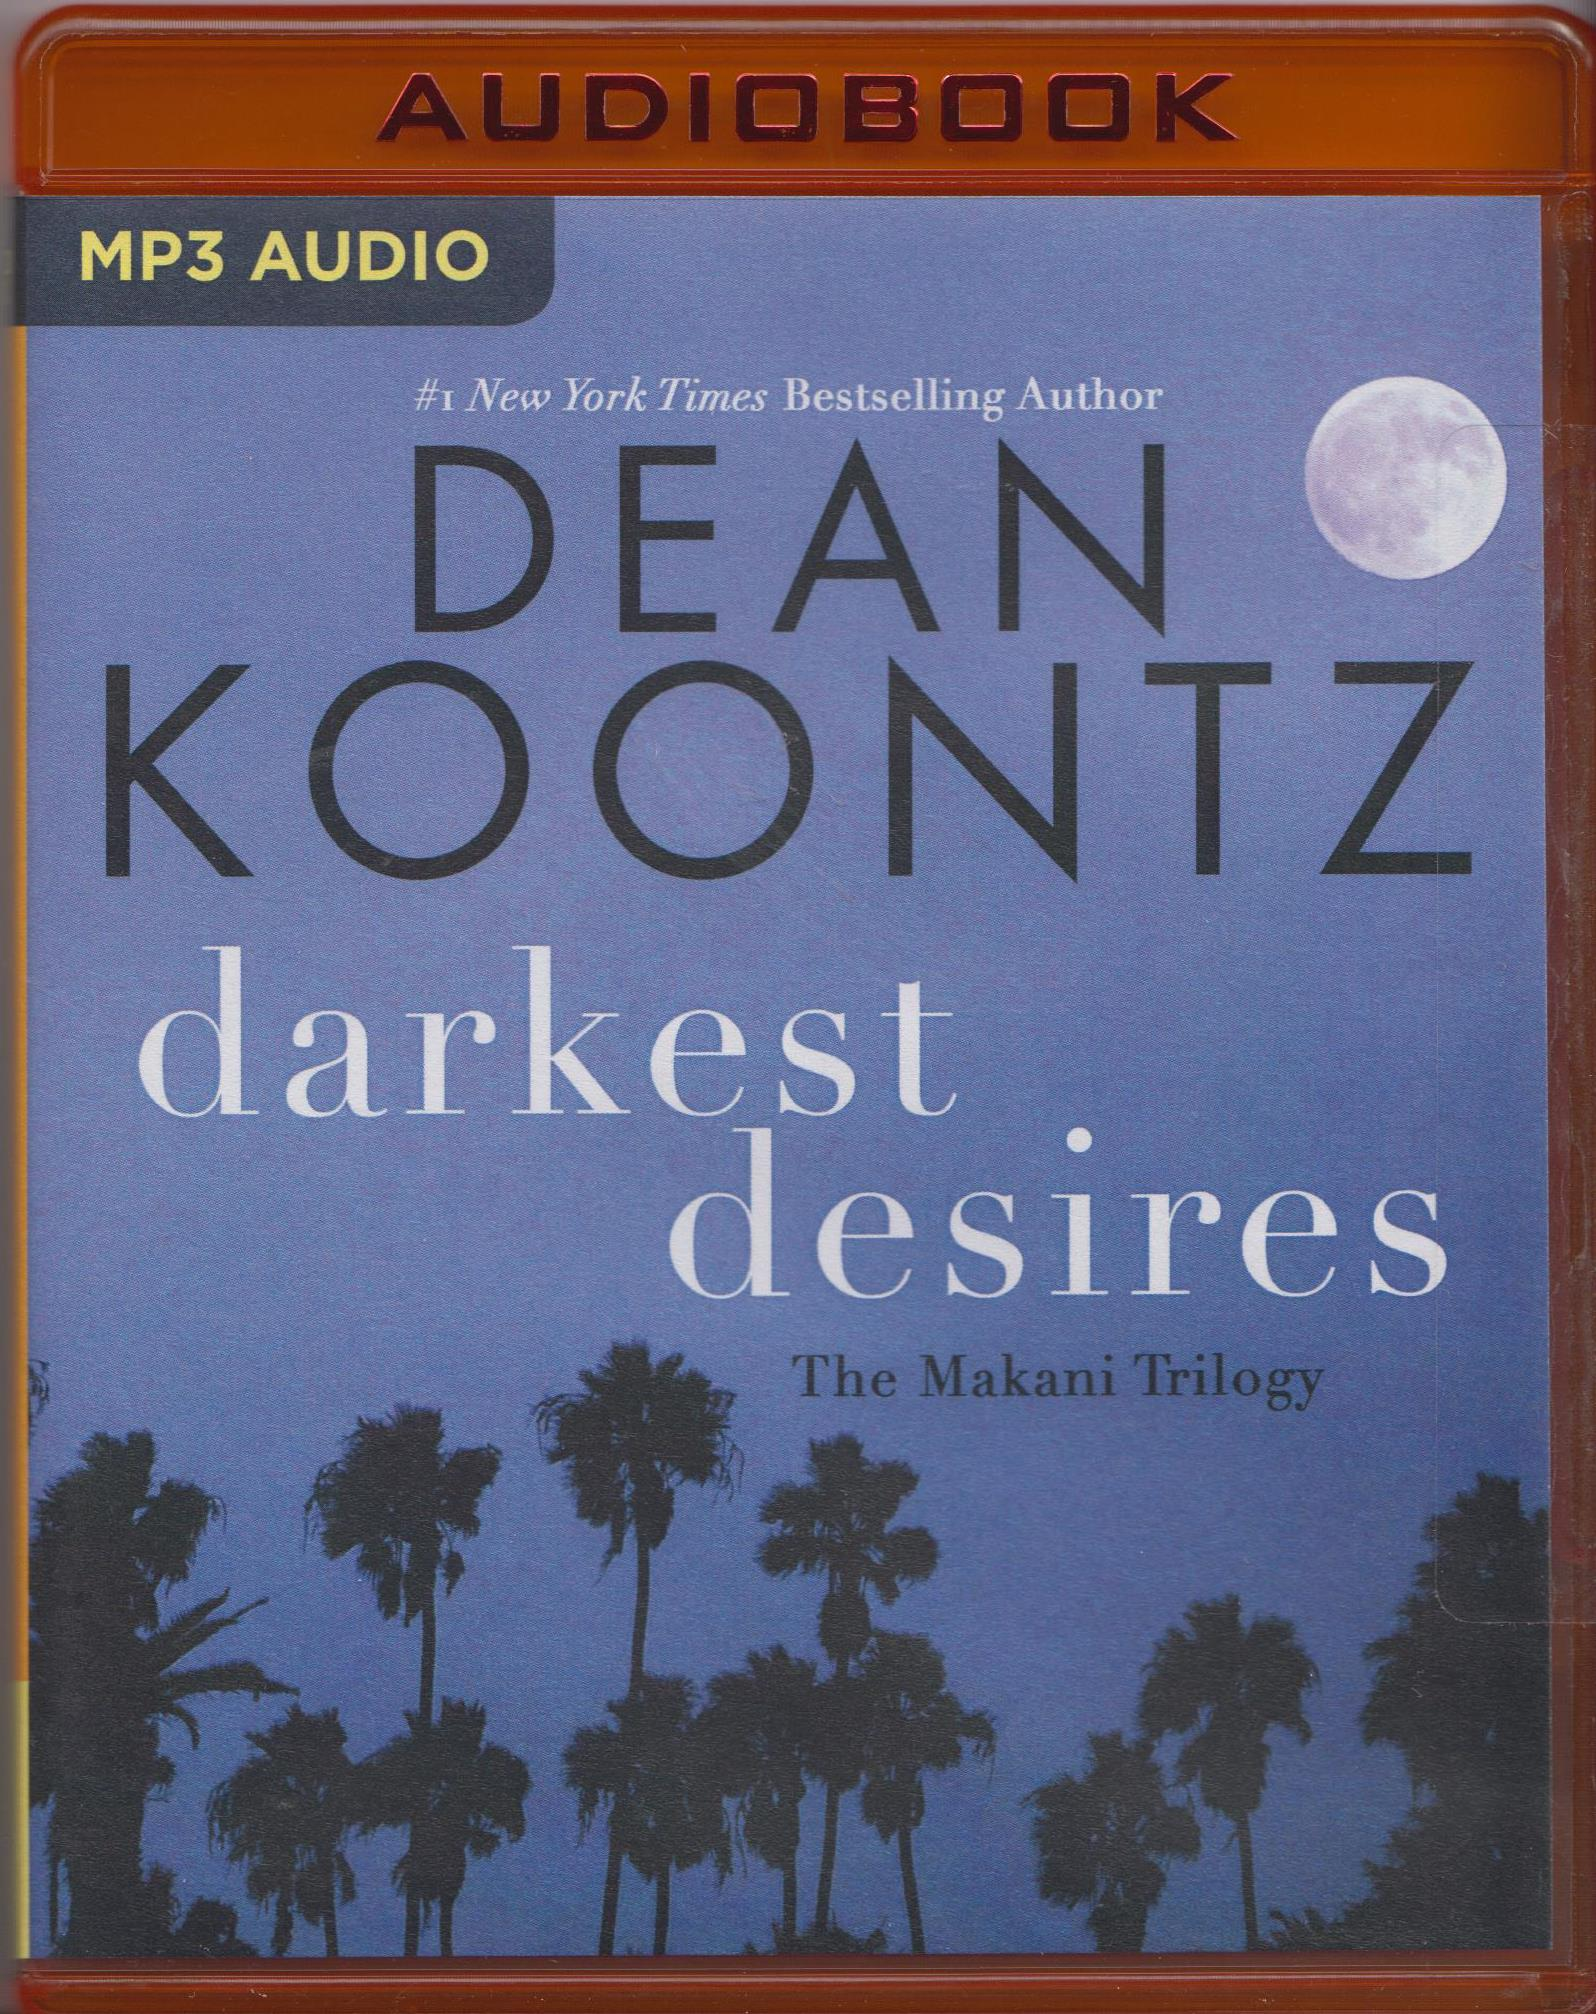 Friday Reads: Darkest Desires: The Makani Trilogy by Dean Koontz